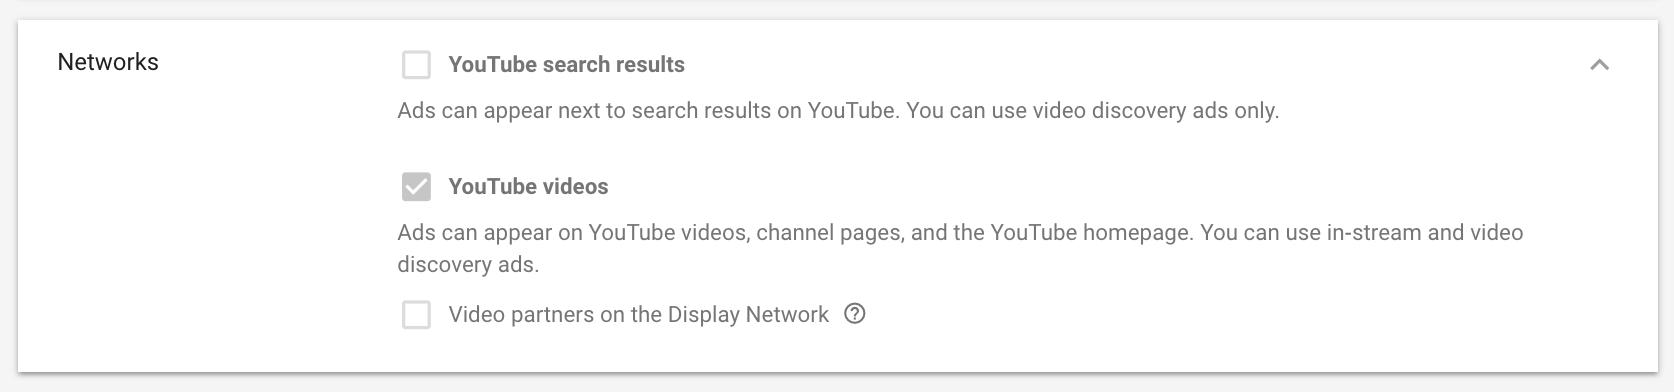 YouTube Ads Networks